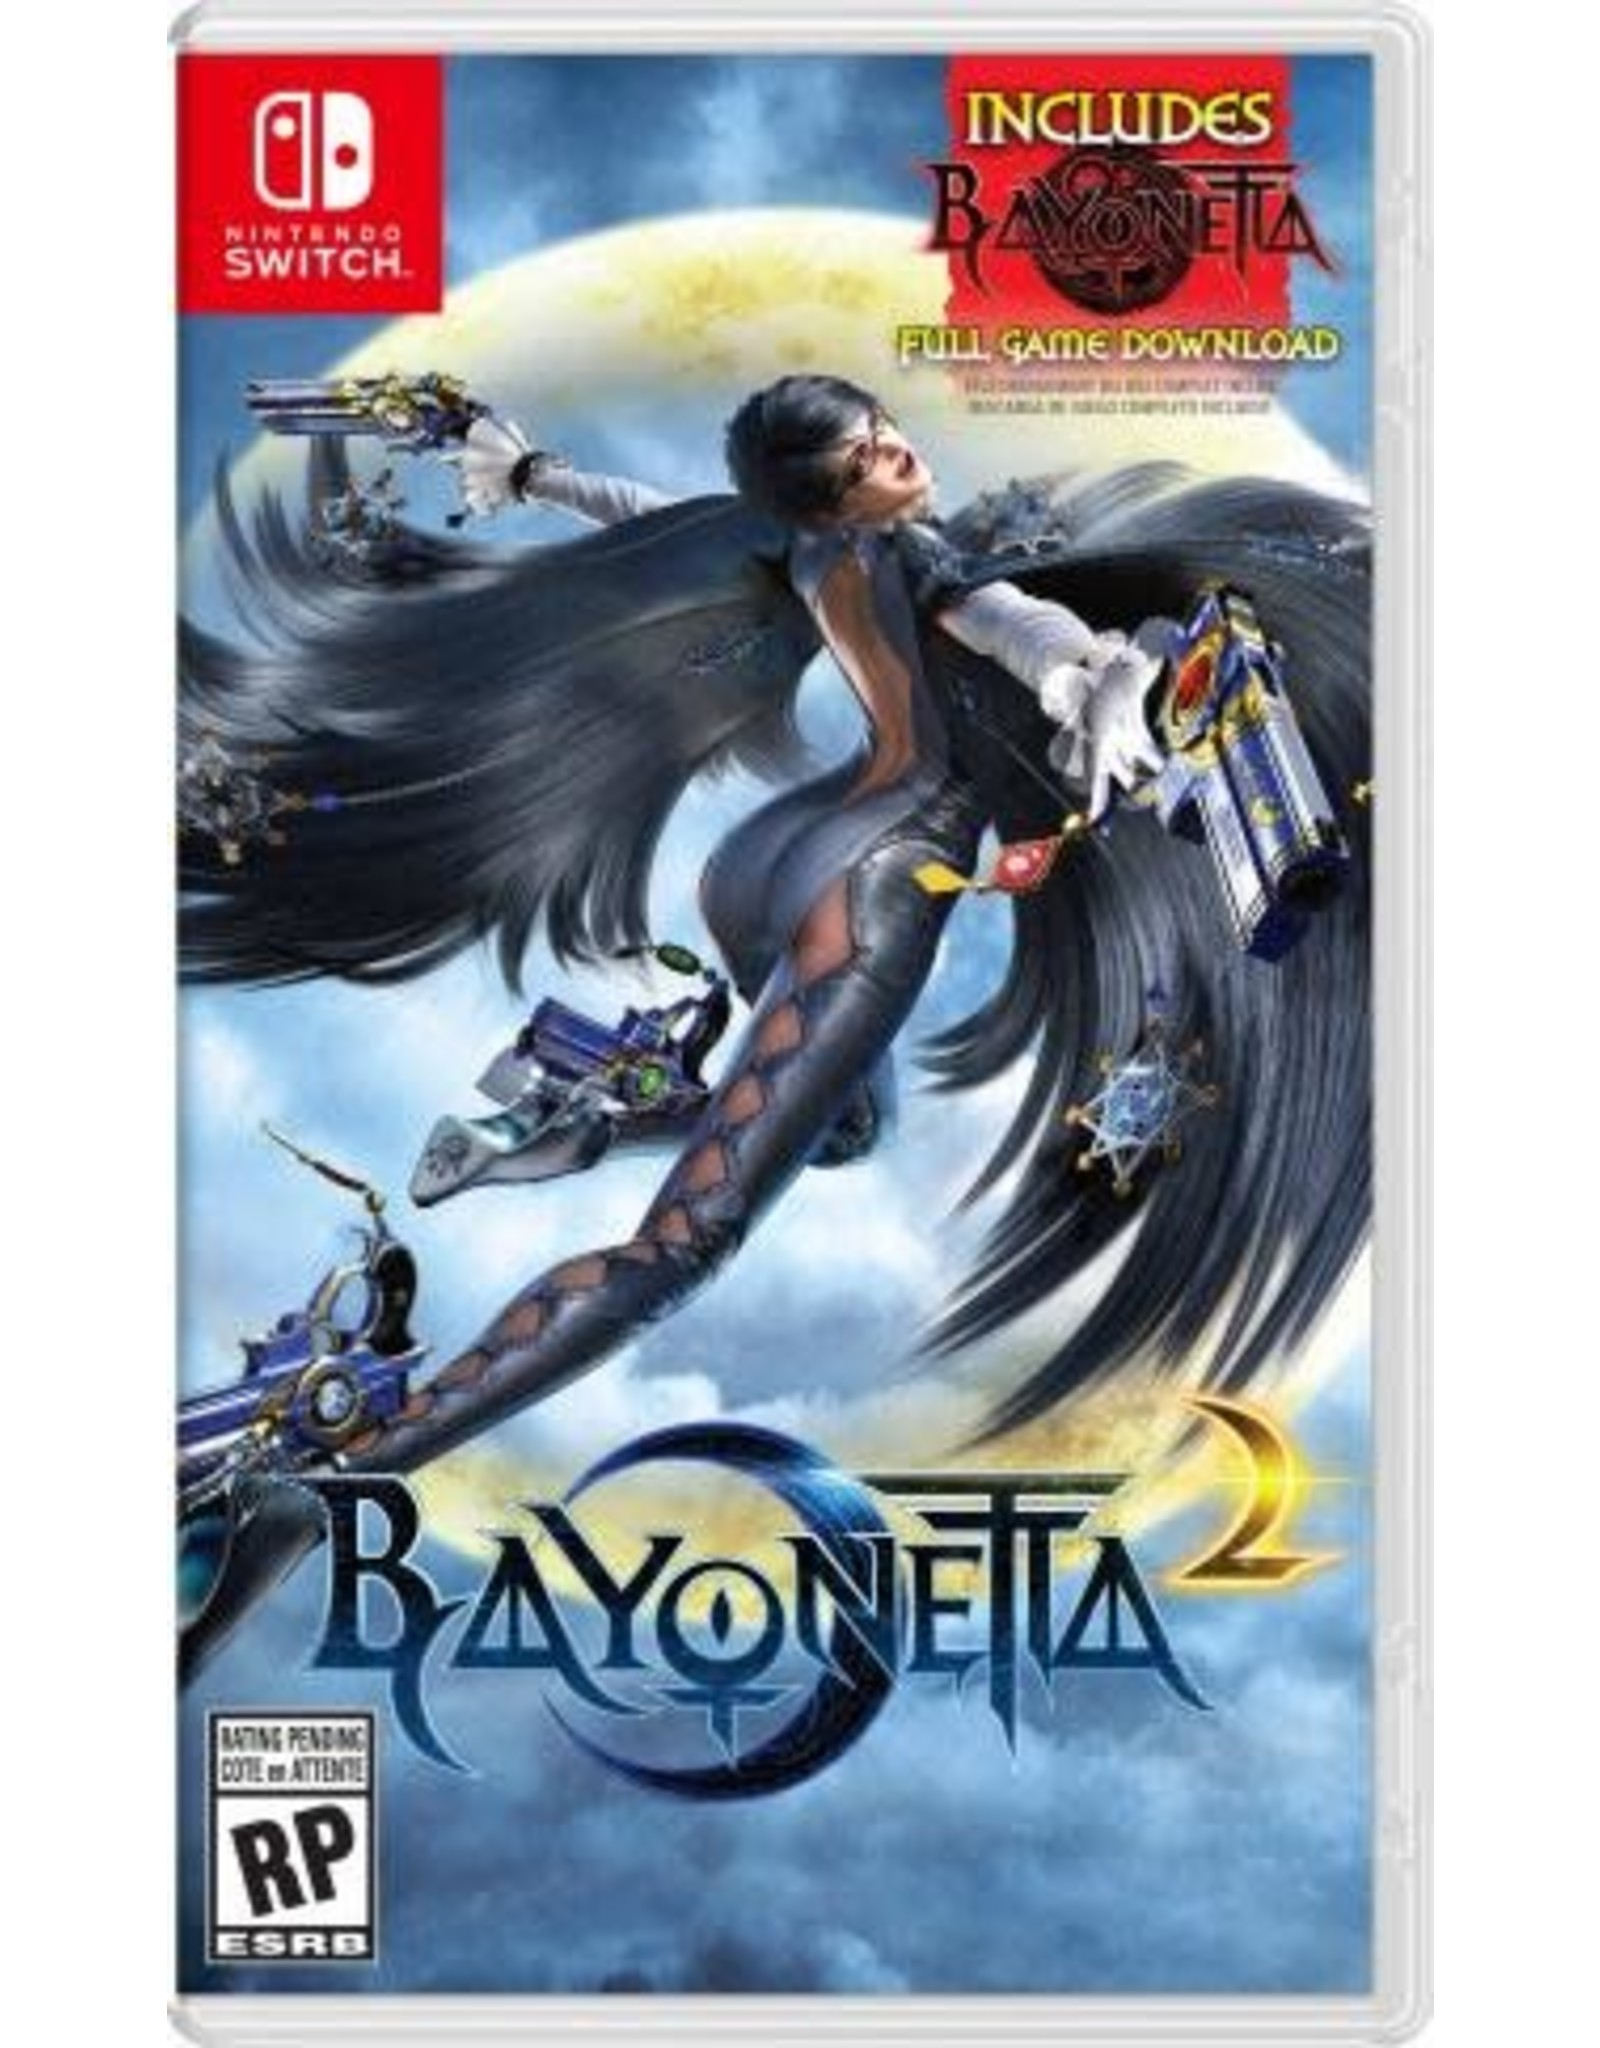 Nintendo Switch Bayonetta 2 (includes Bayonetta Game Download)